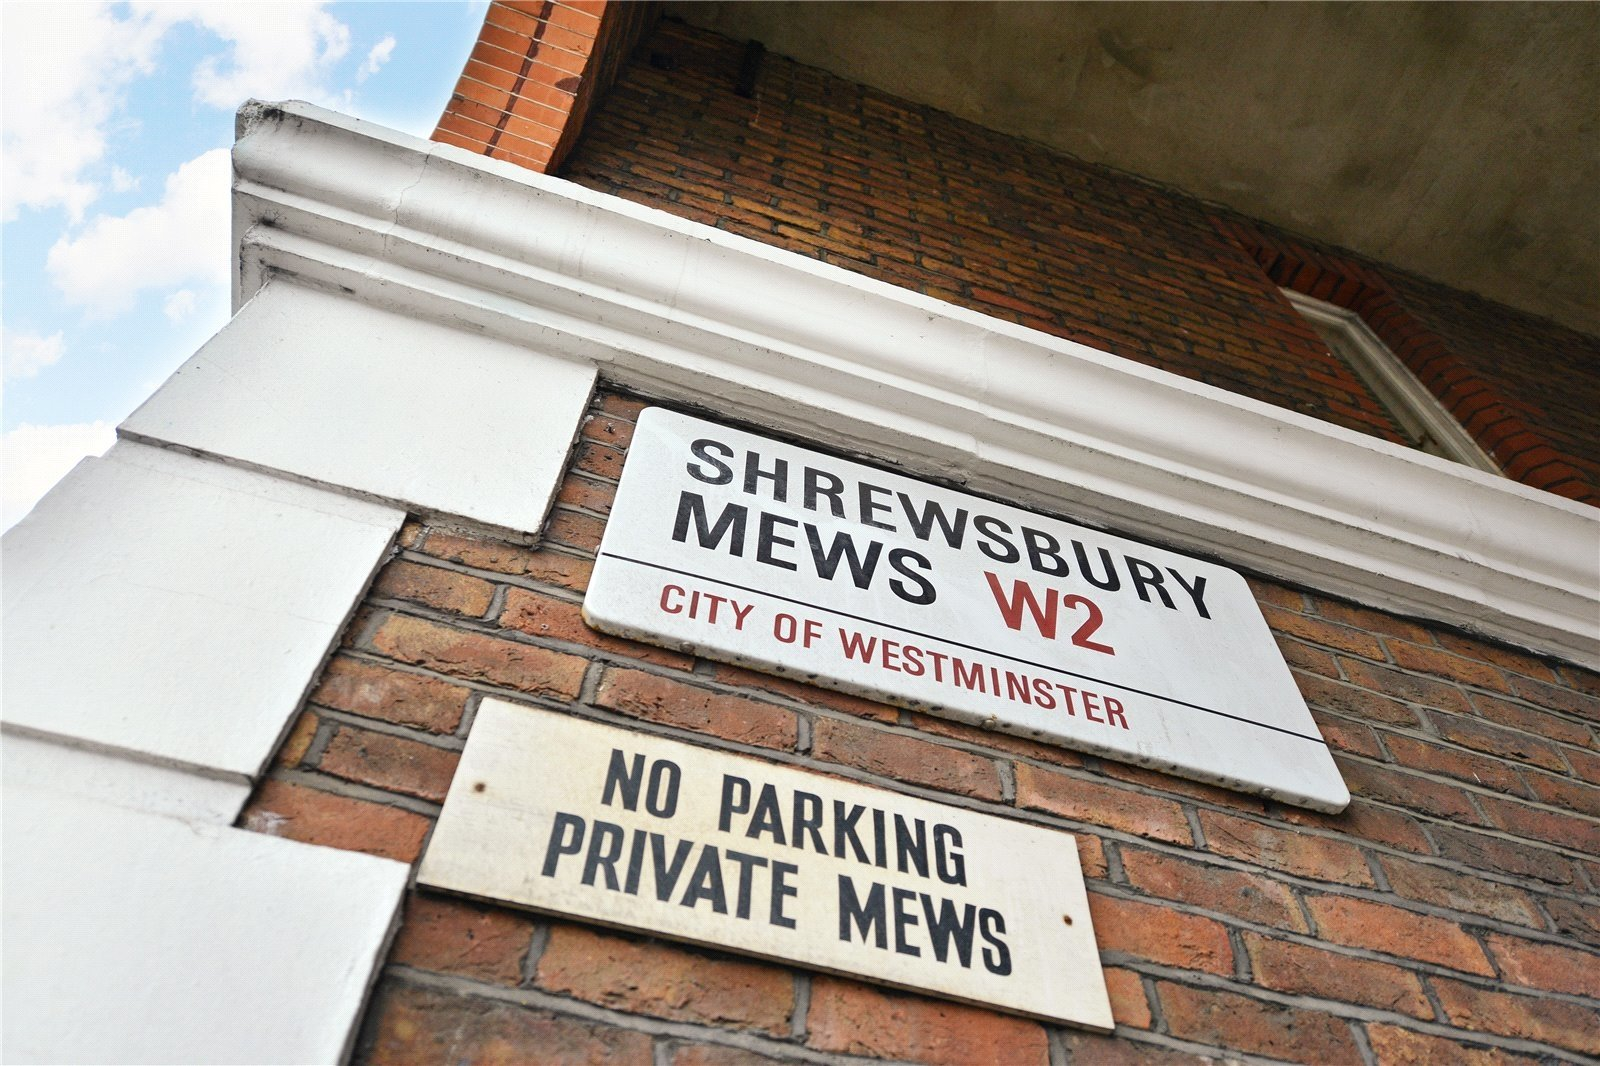 Shrewsbury Mews, London, W2-8